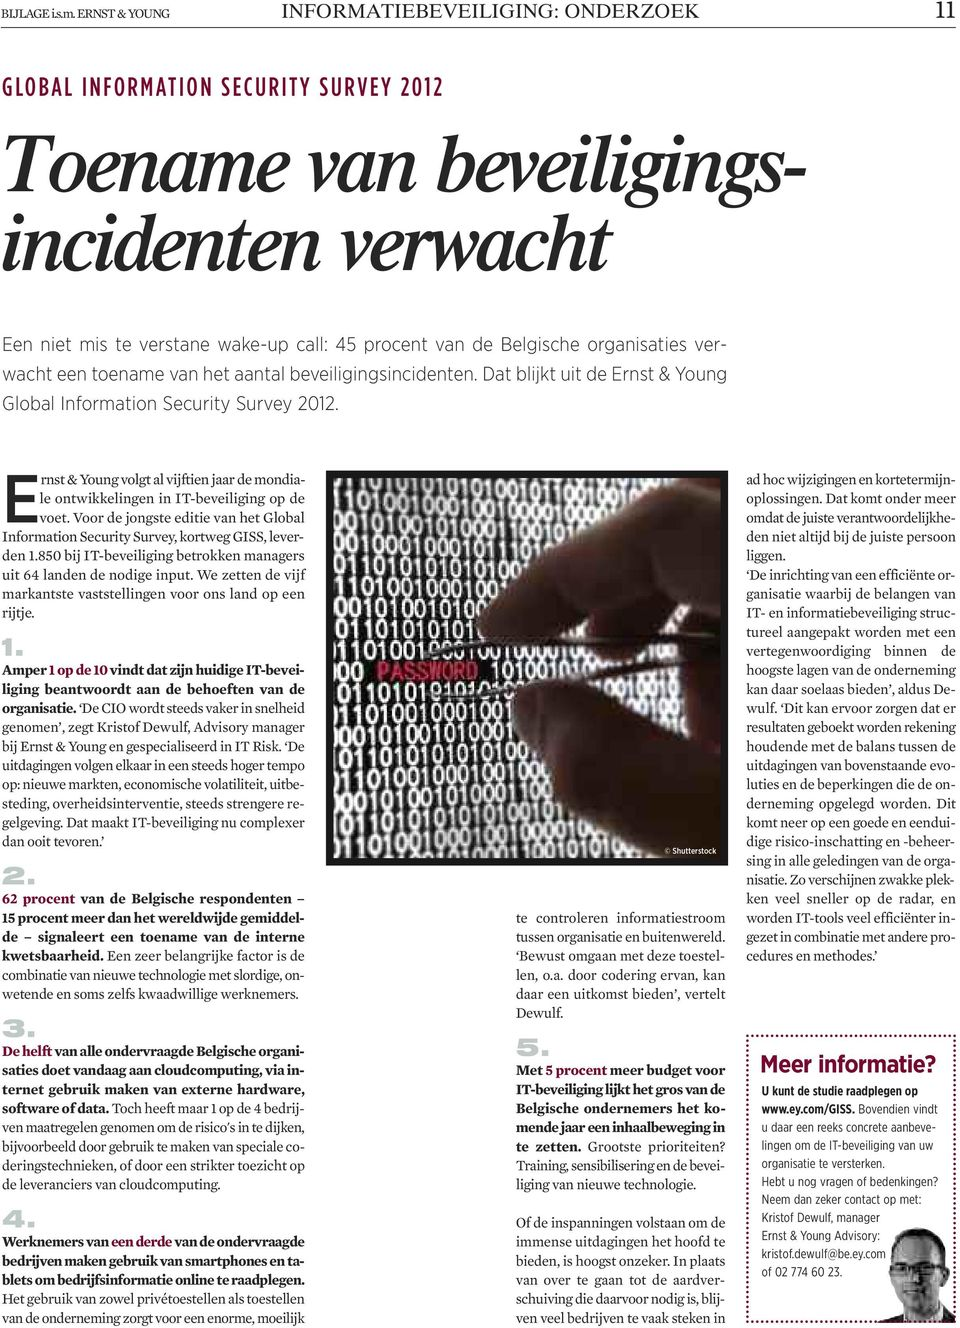 45 procent van de Belgische organisaties verwacht een toename van het aantal beveiligingsincidenten. Dat blijkt uit de Ernst & Young Global Information Security Survey 2012.